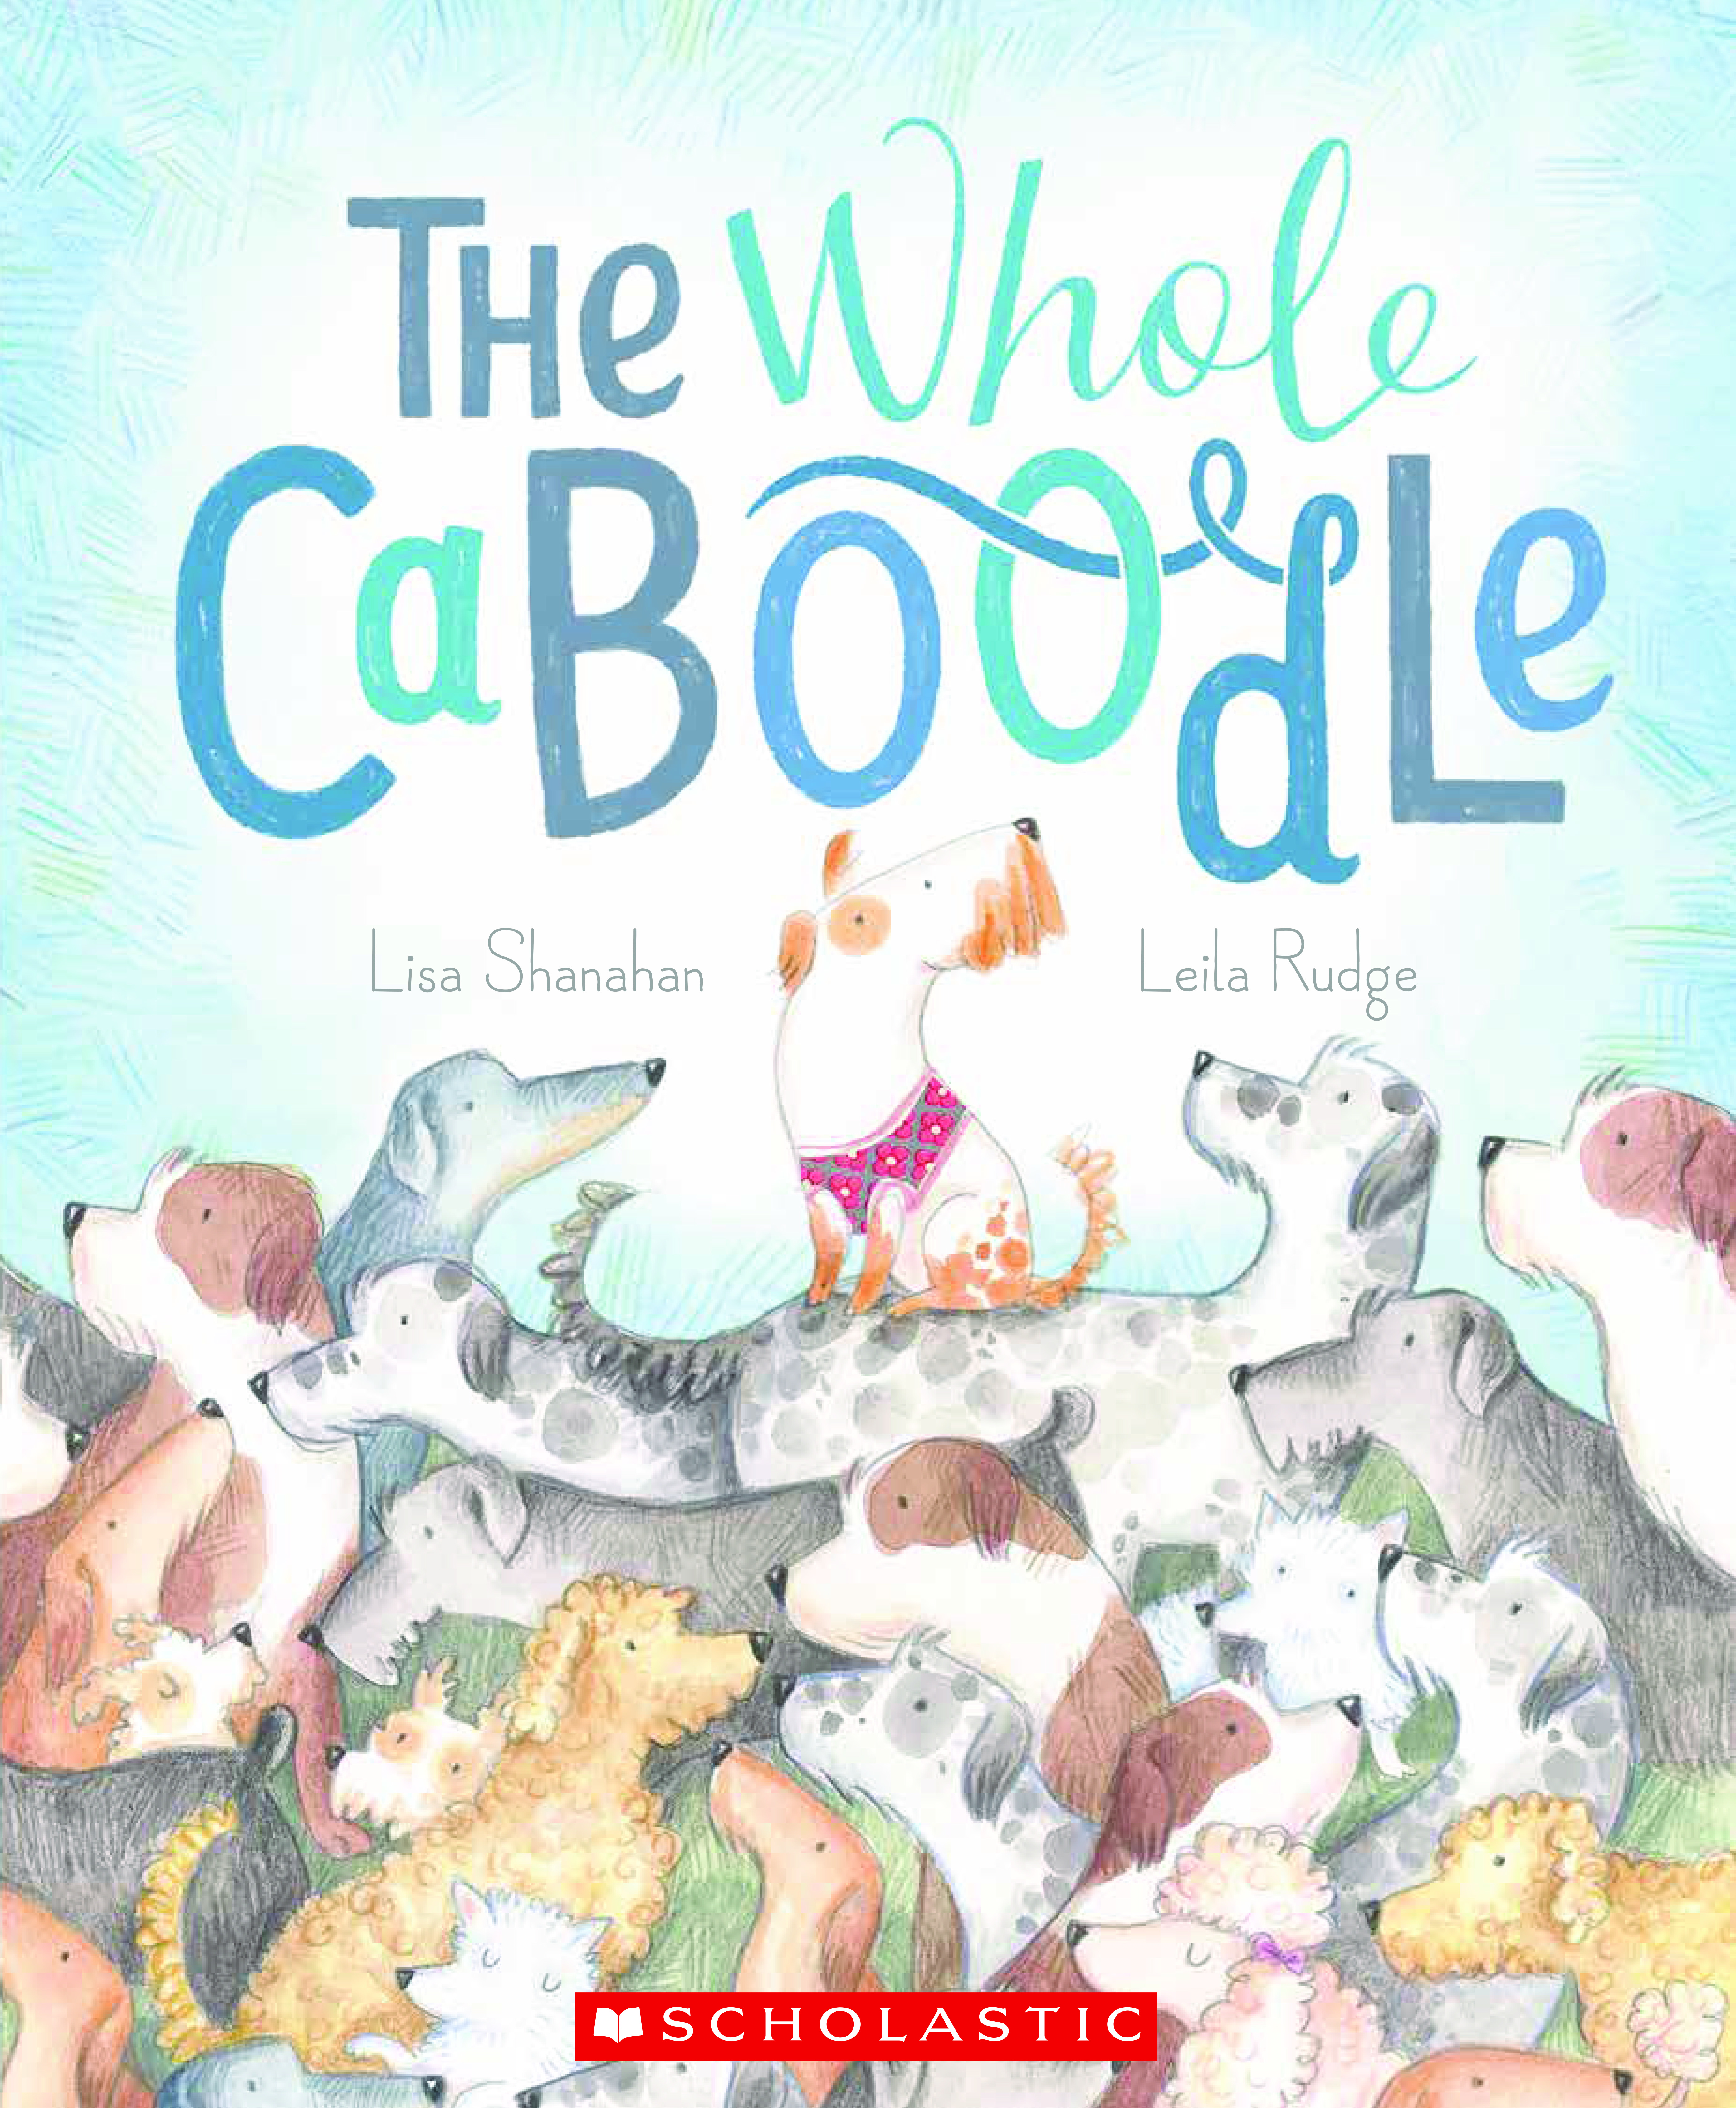 The Whole Caboodle